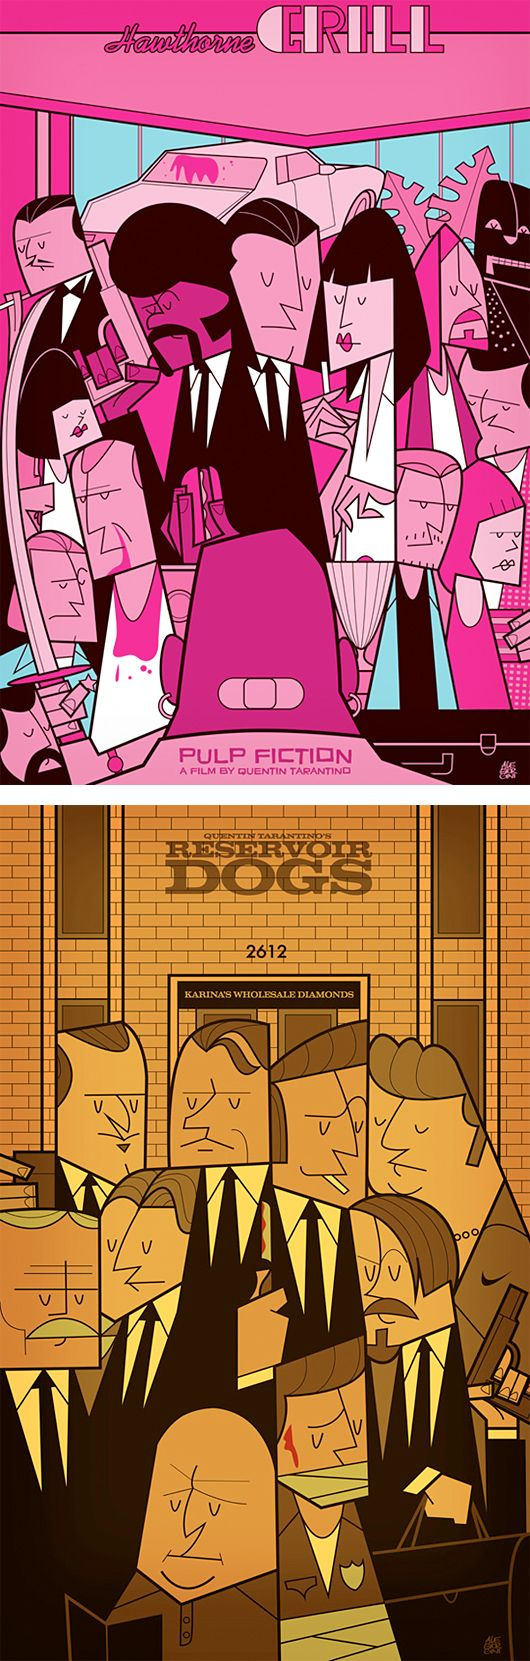 Pulp Fiction & Reservoir Dogs - Illustrations by Ale Giorgini